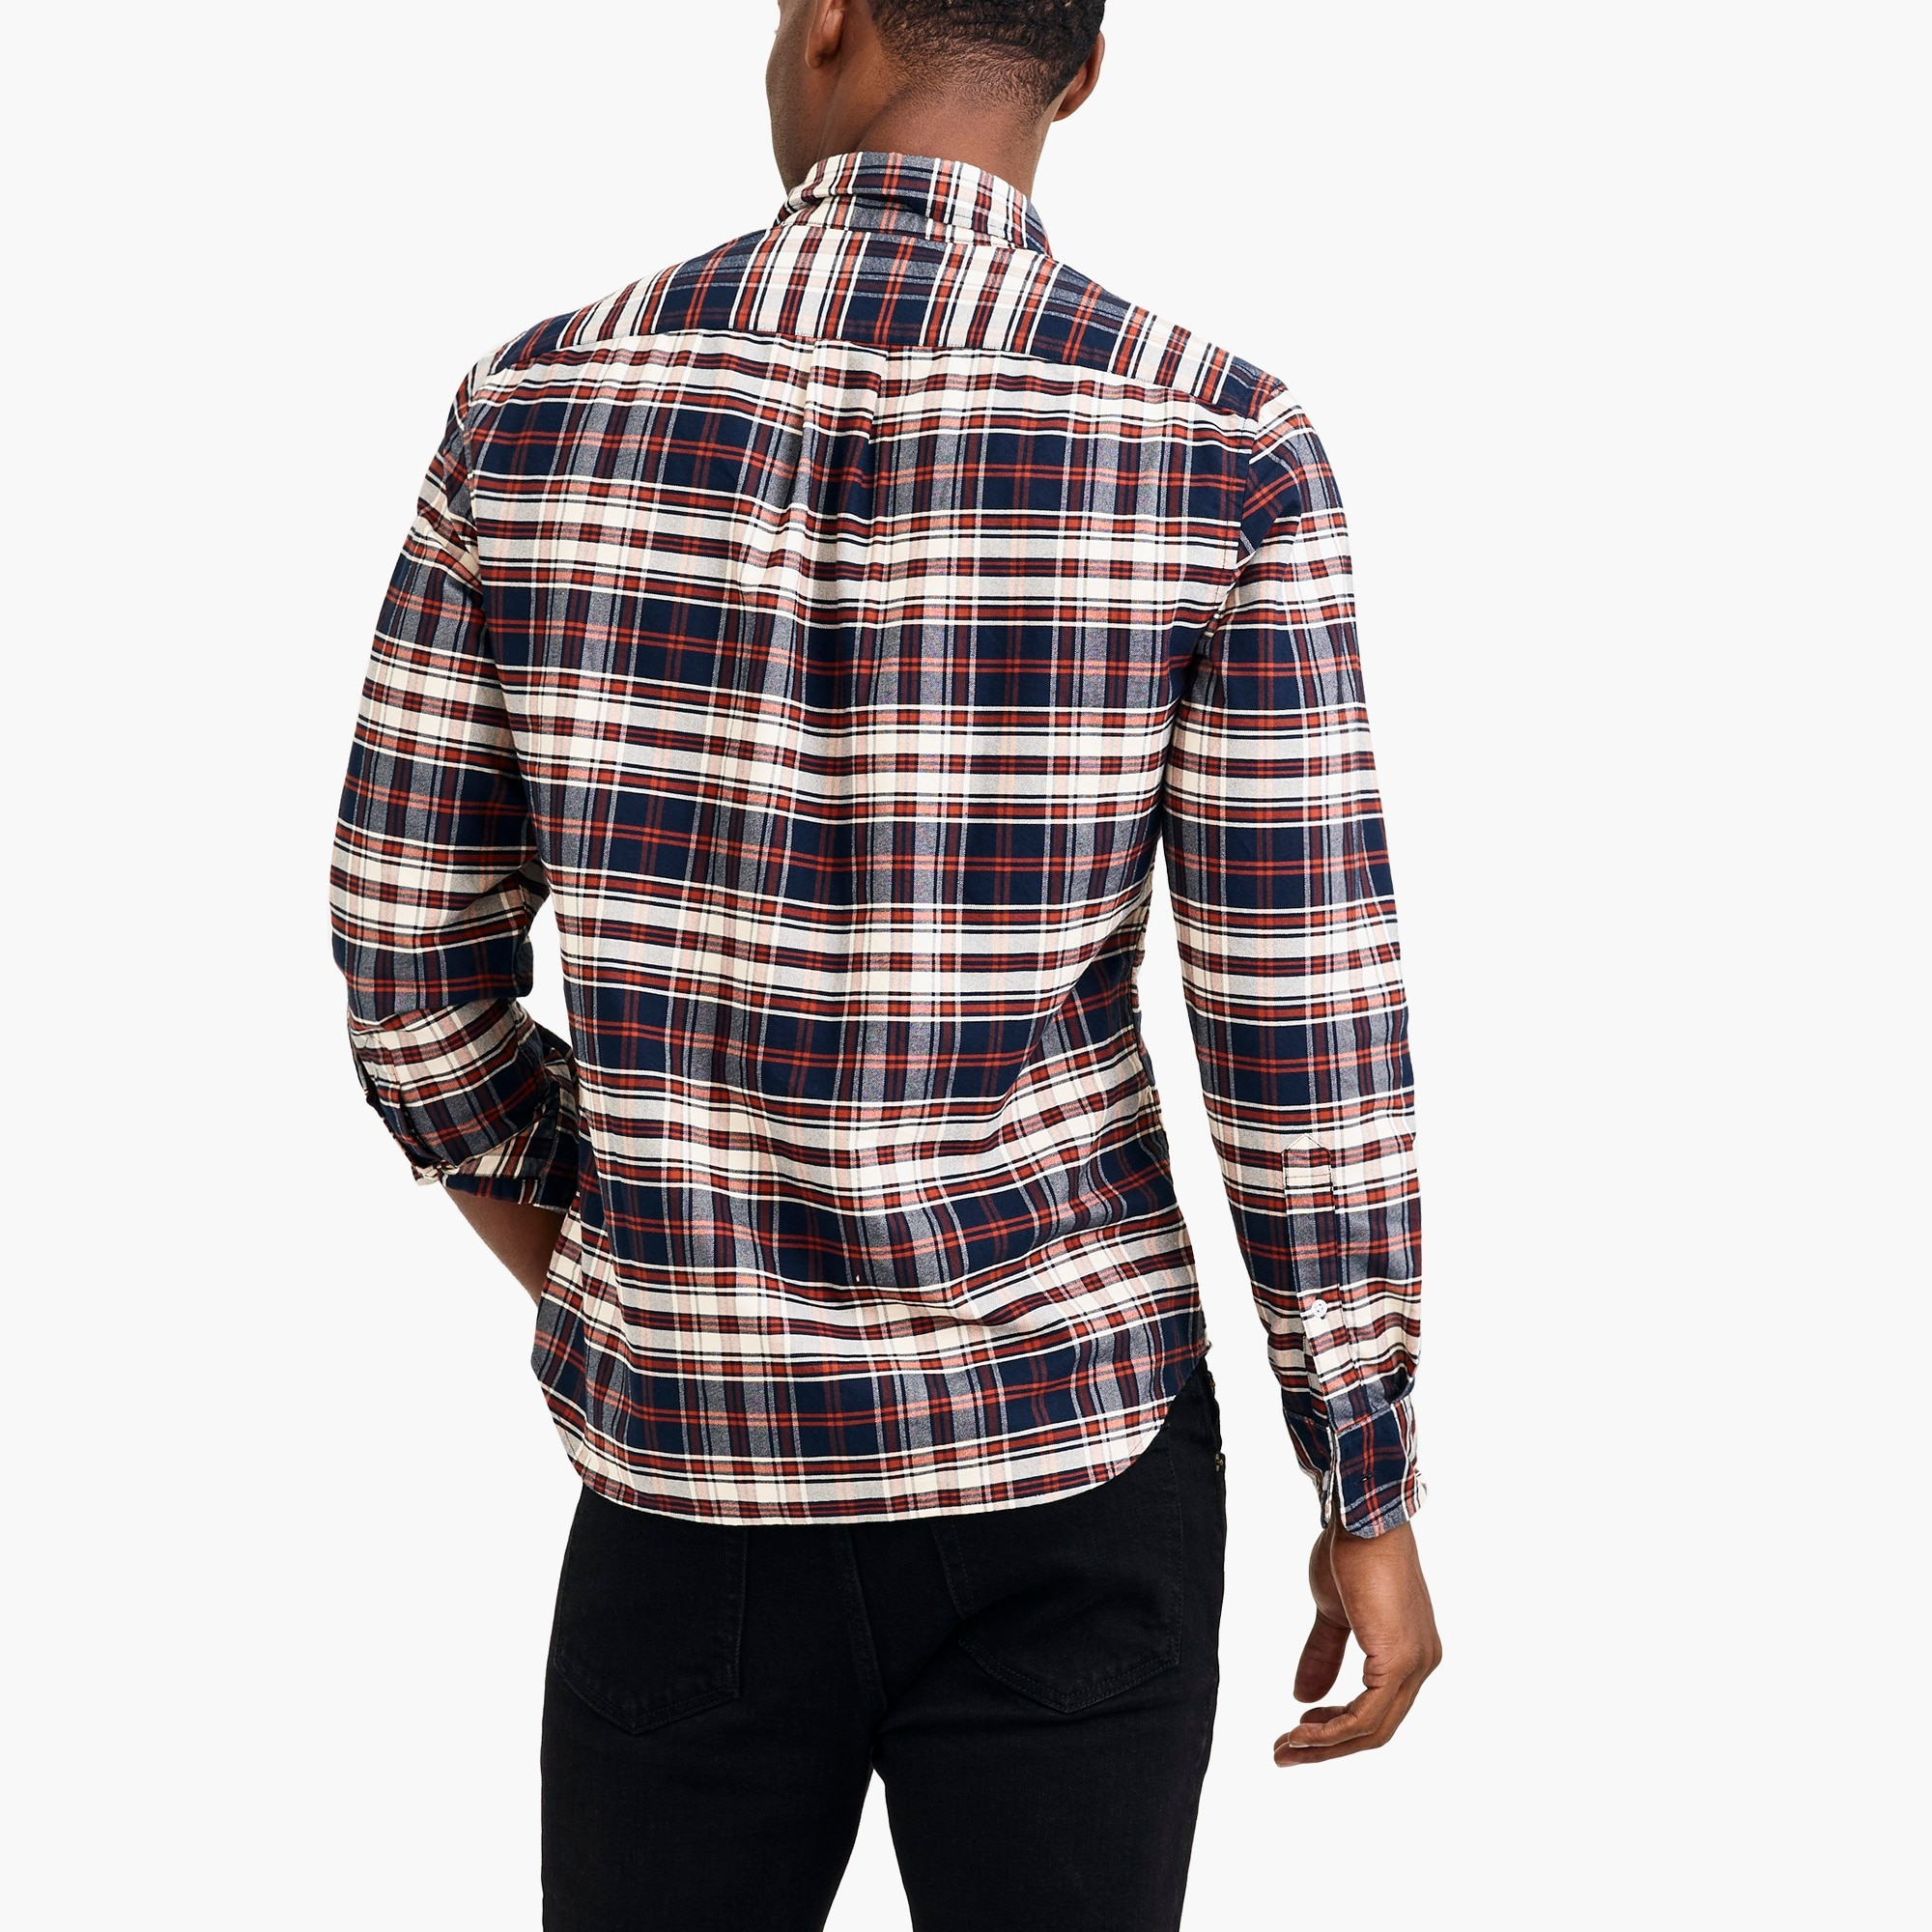 Image 3 for Flex oxford shirt in plaid